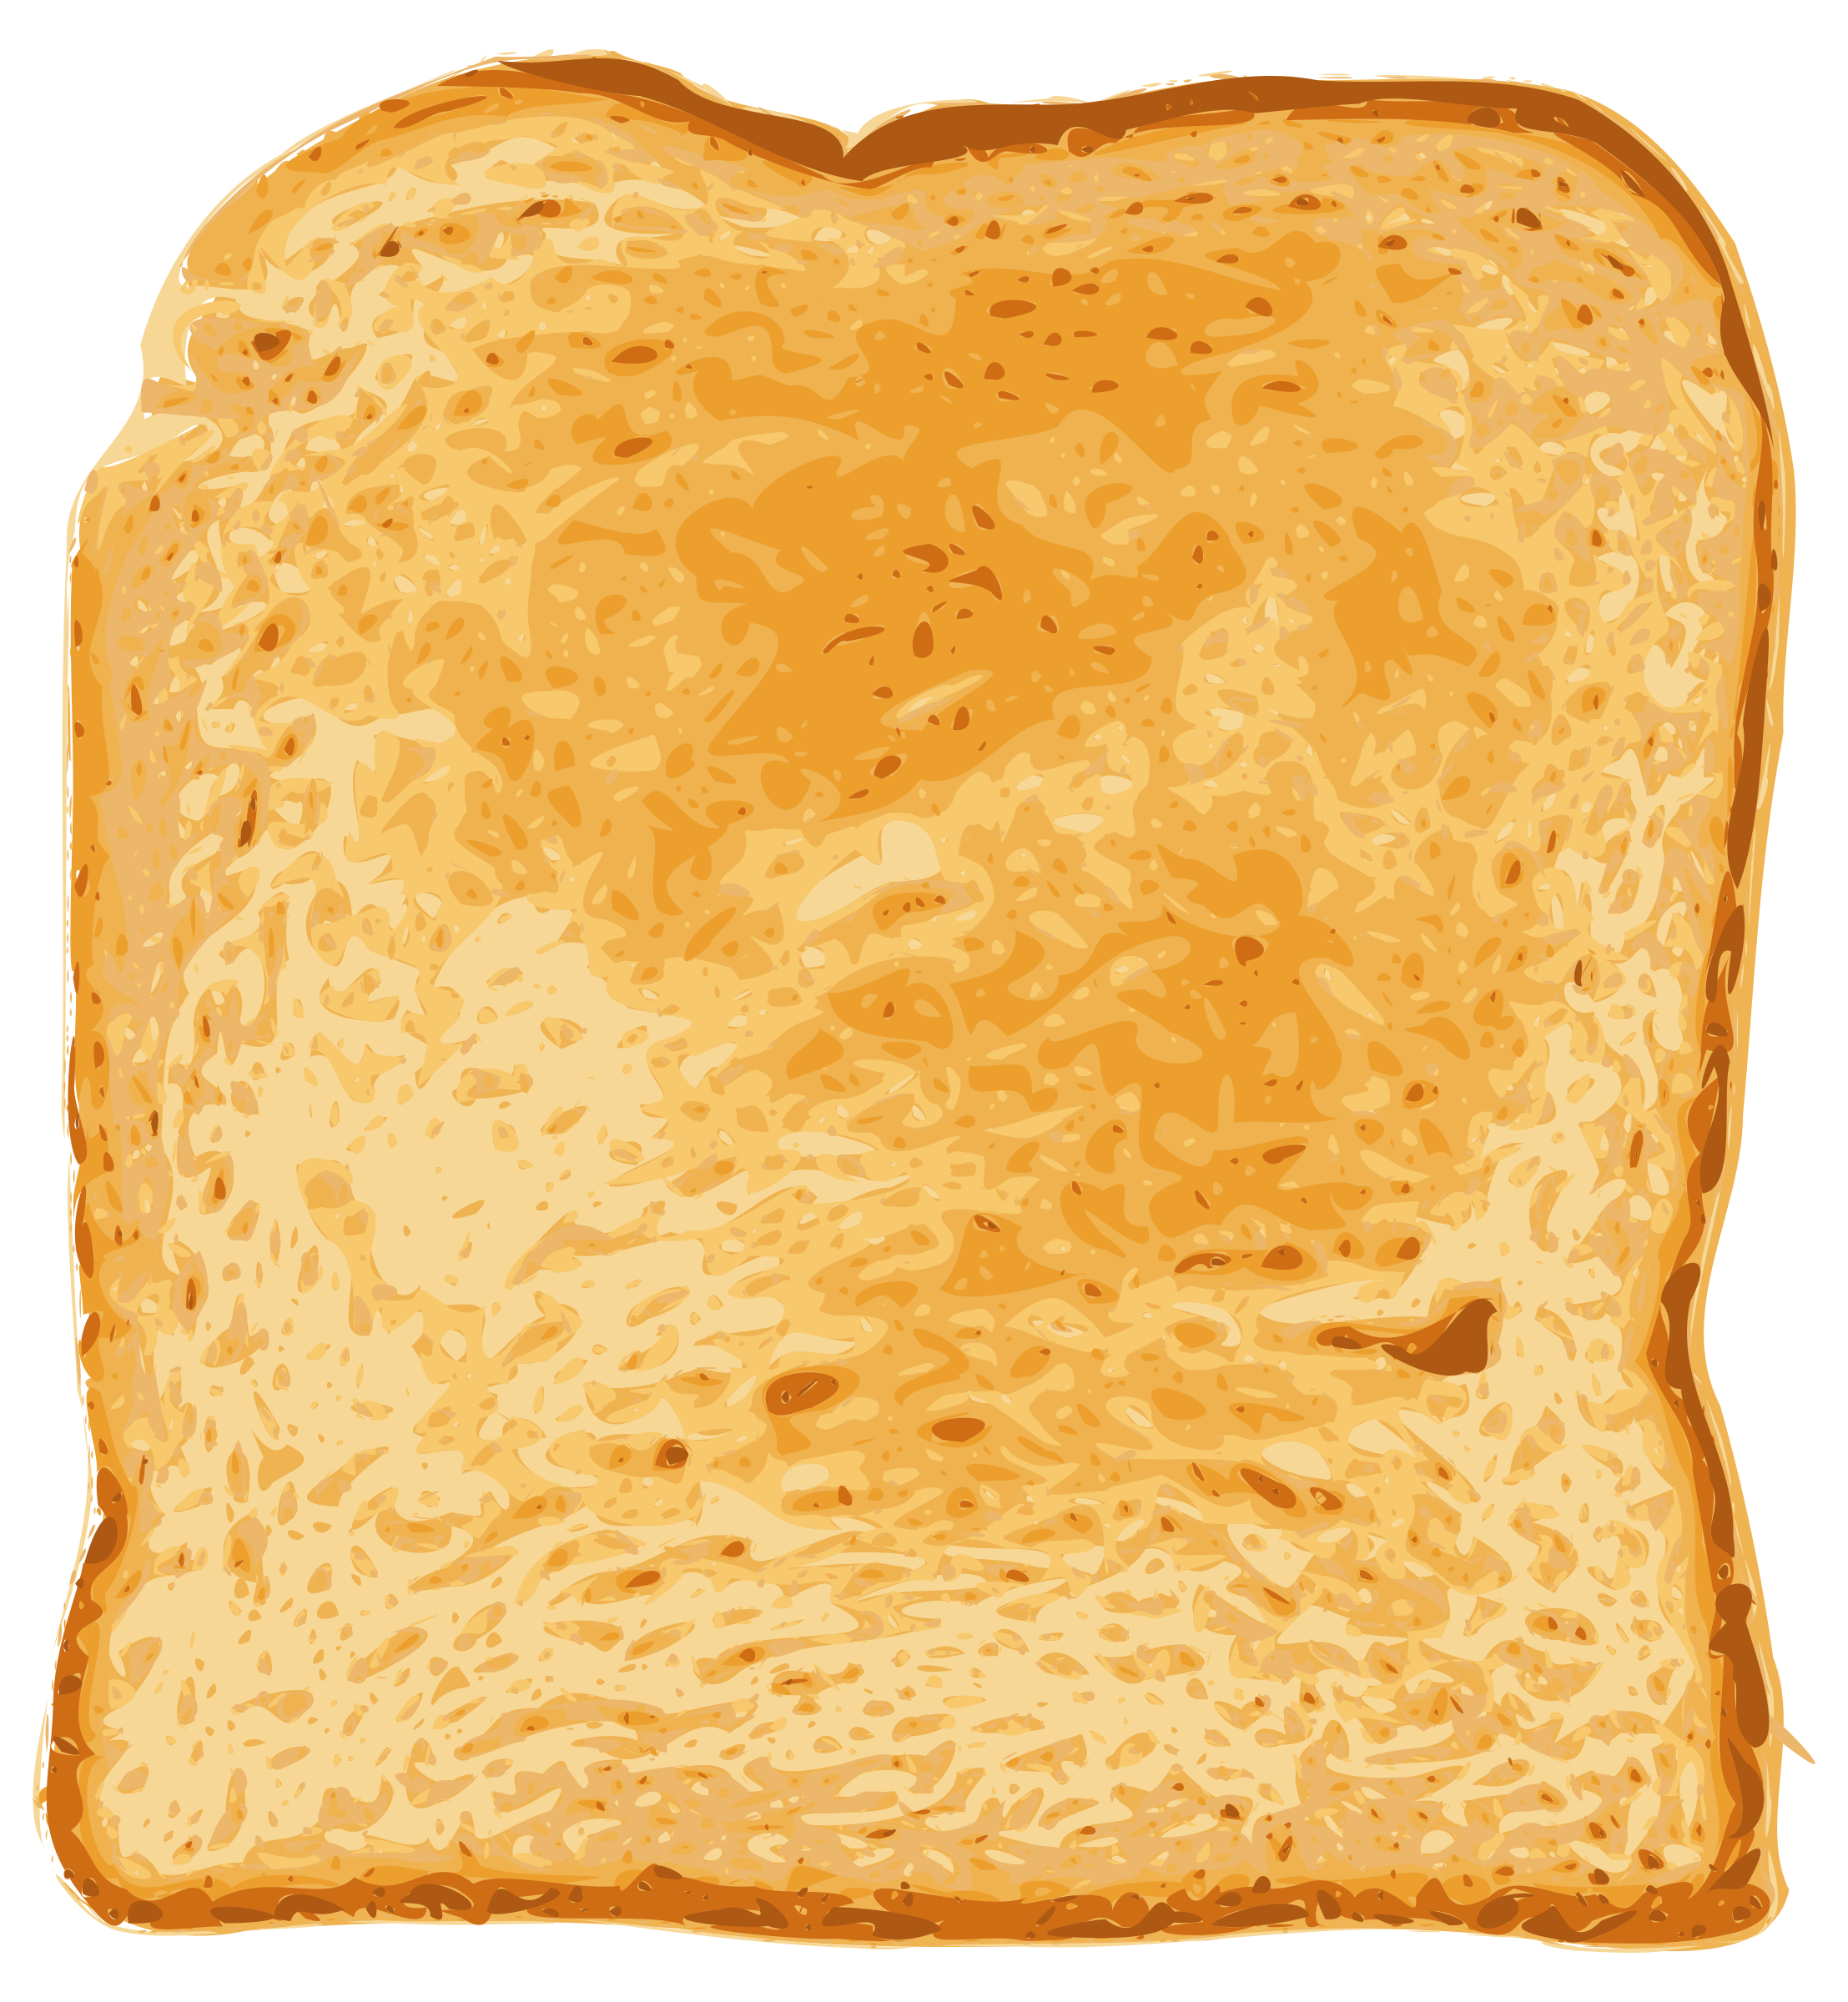 png library library Toast icons png free. Toaster clipart eye